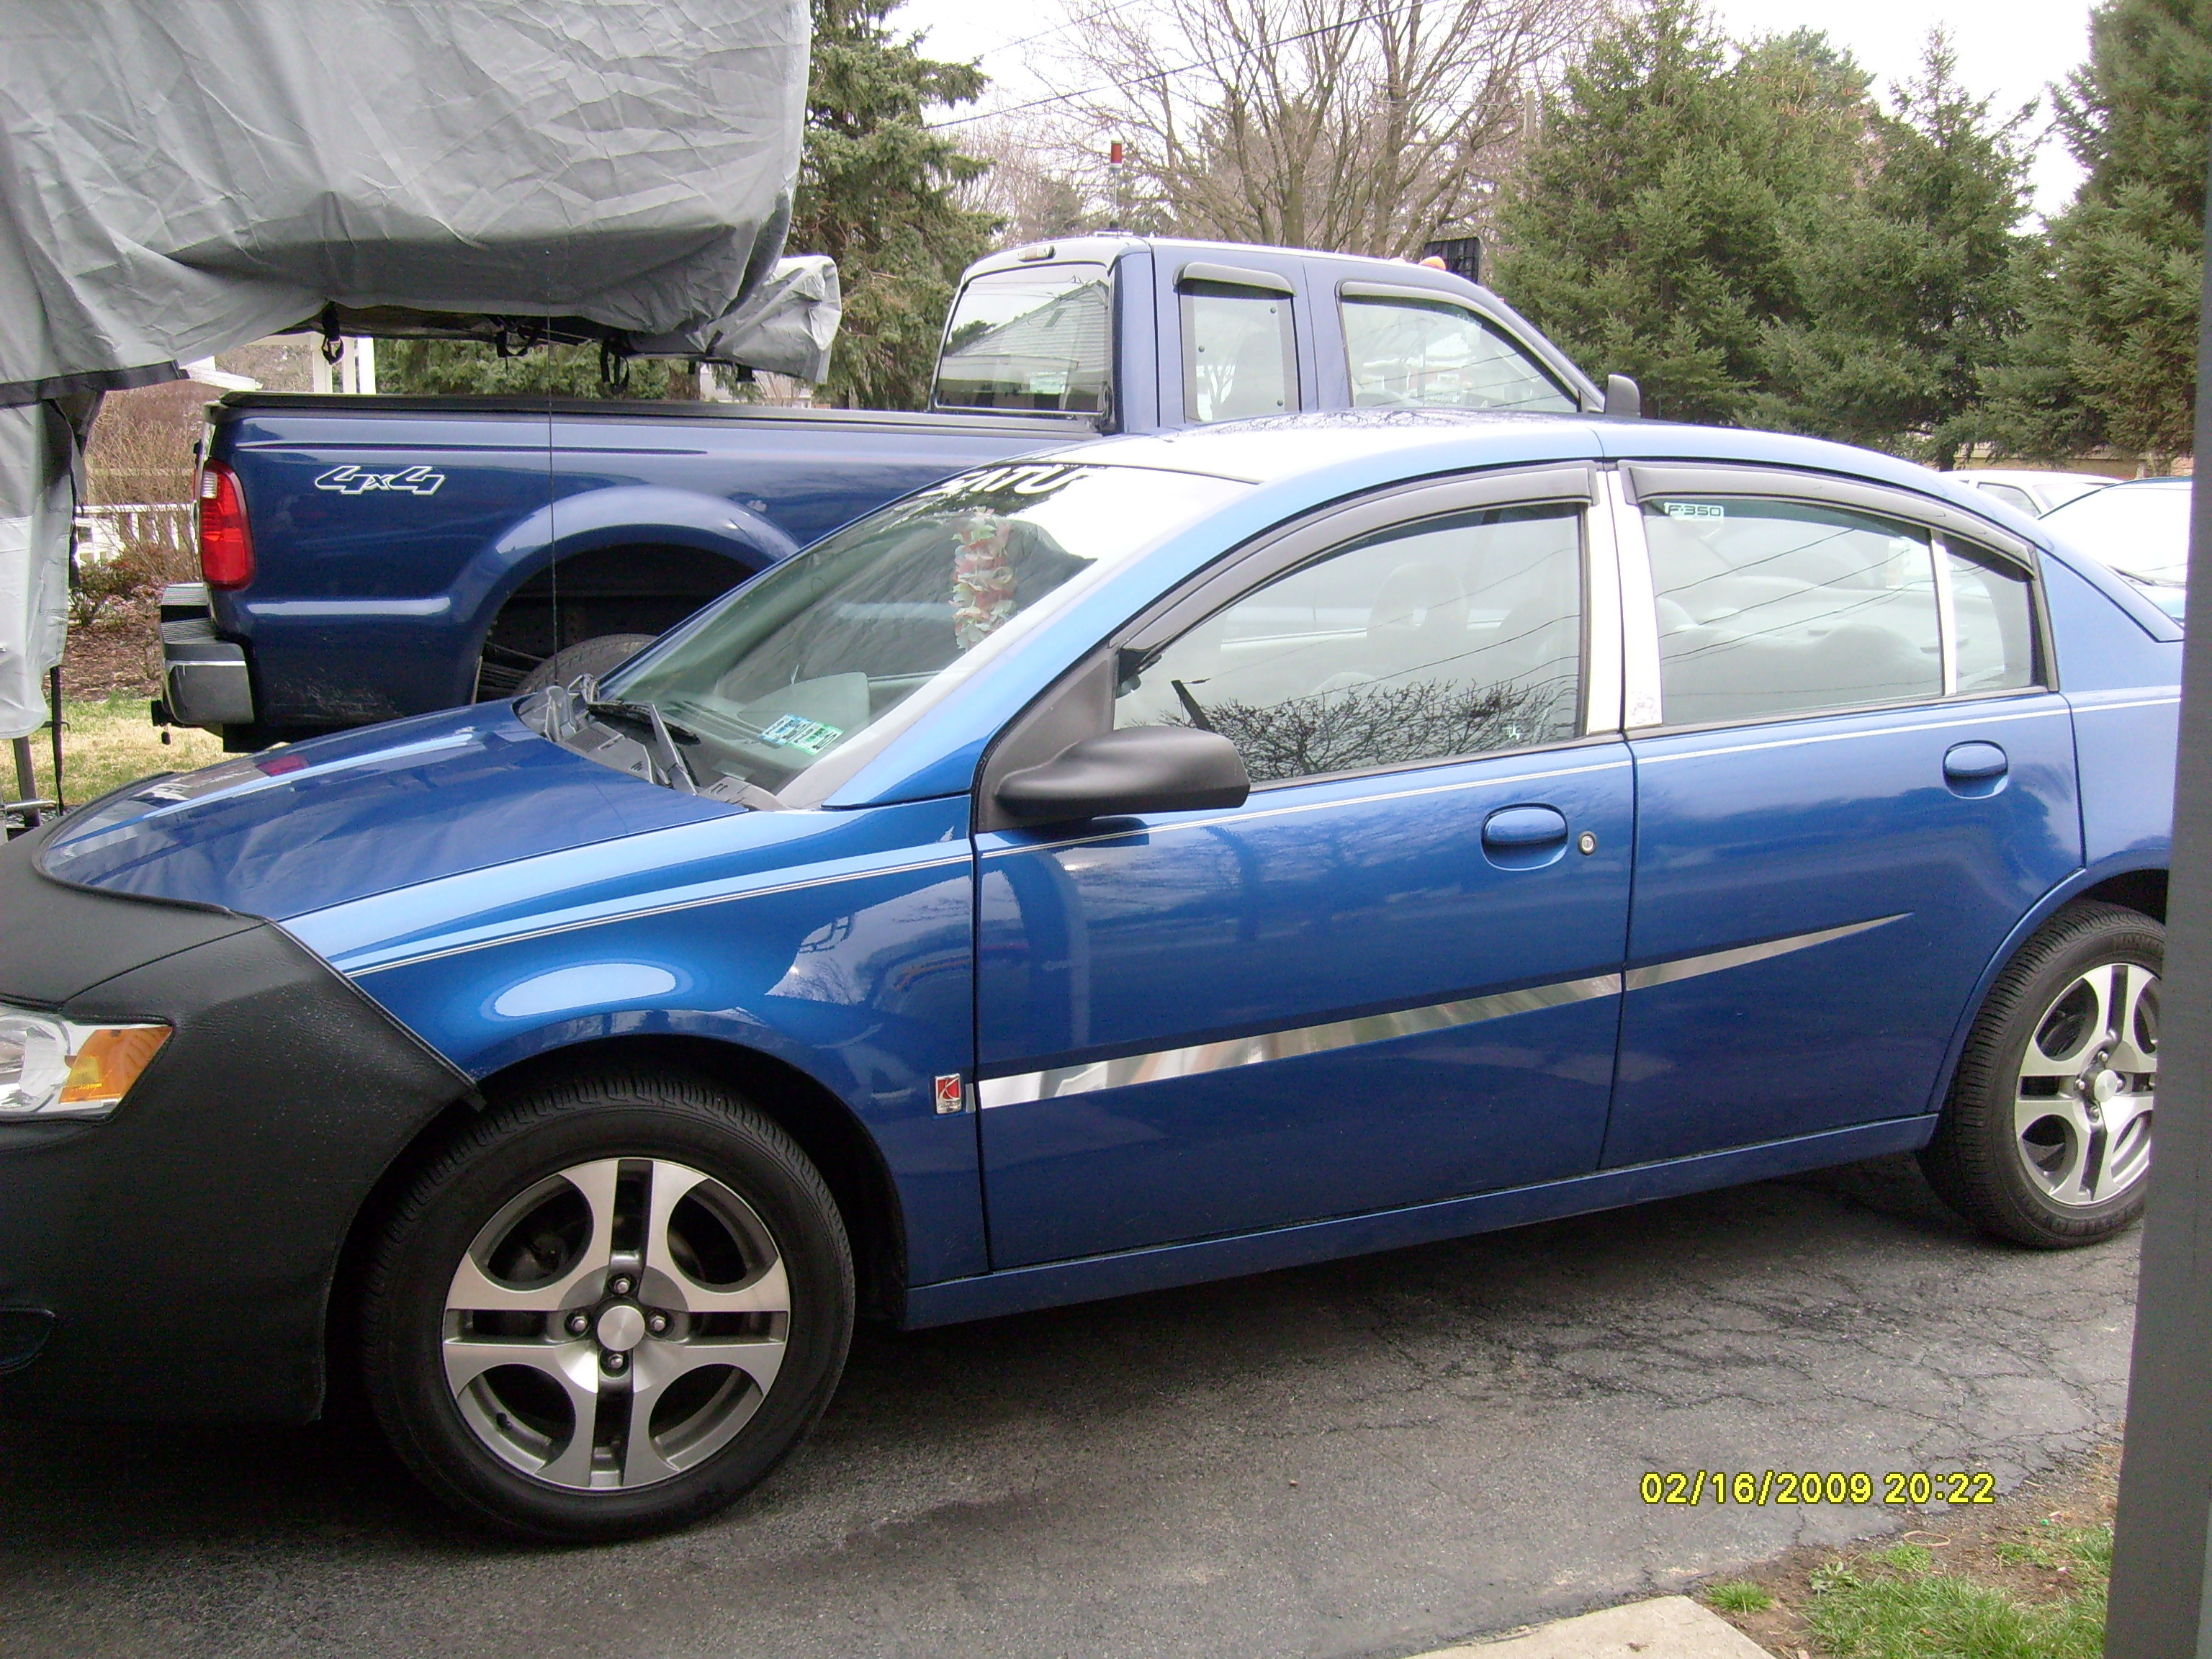 2005 saturn ion in lancaster pa 3072 x 2304 1722 kb jpeg source. Cars Review. Best American Auto & Cars Review